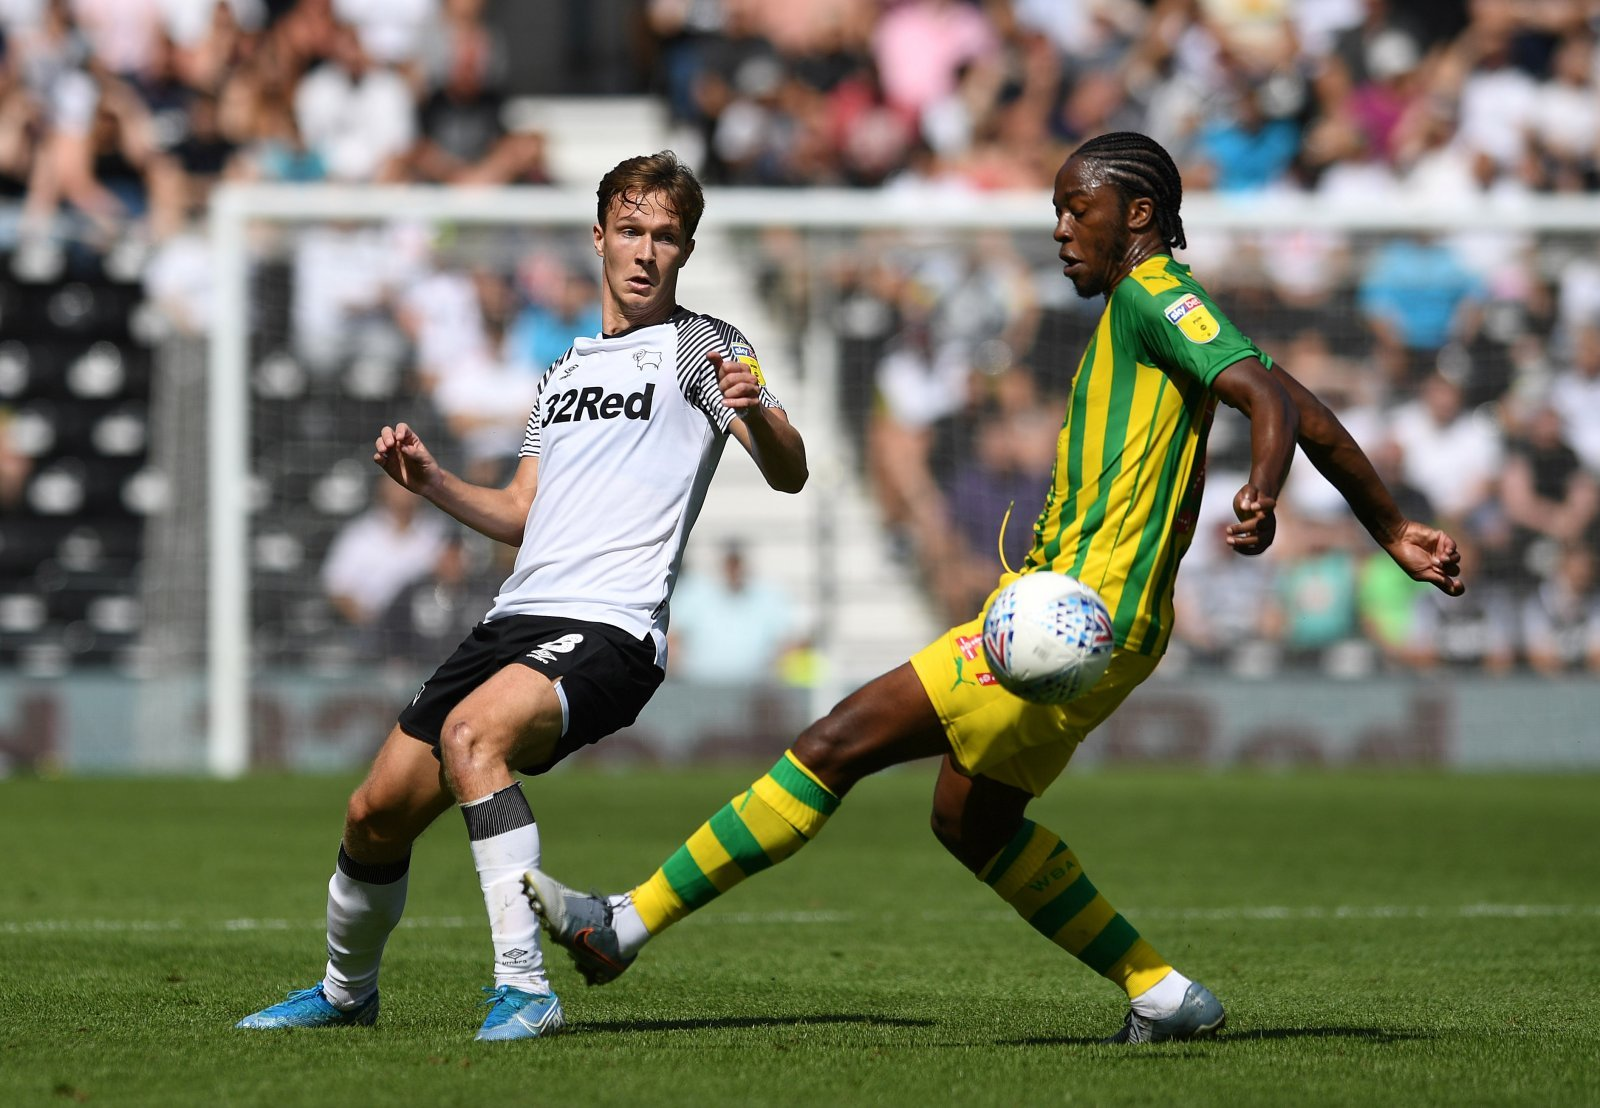 West Bromwich Albion: Fans laud Romaine Sawyers after performance in win over Middlesbrough